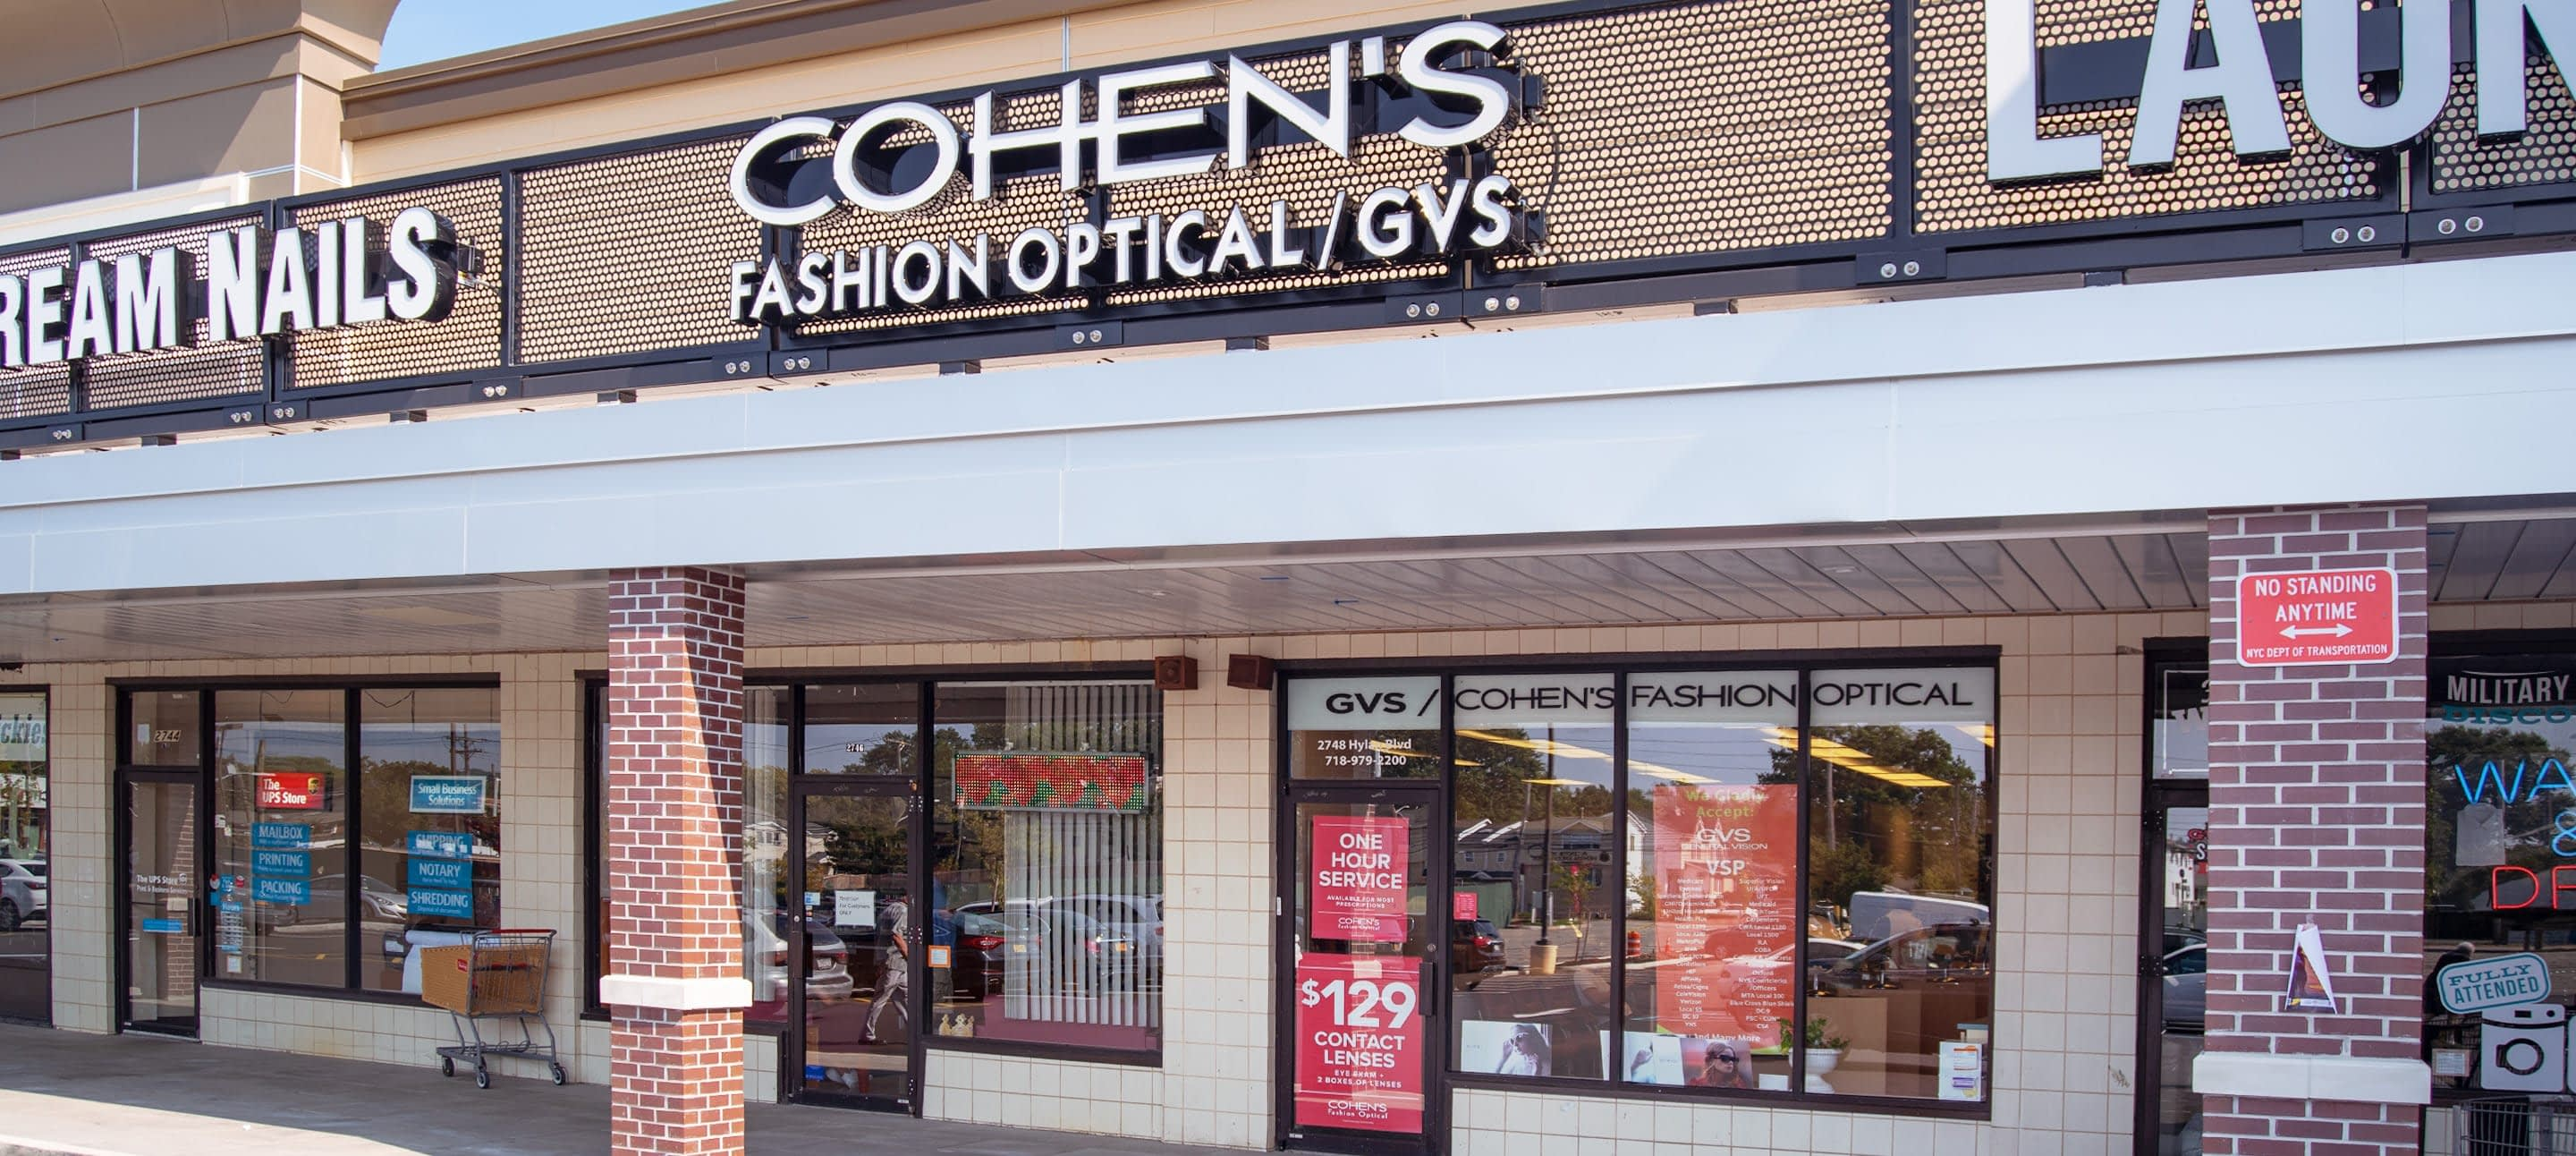 95e8711ae20f Eyeglasses & Eye Exams, Tysens Park Shopping Center - Staten Island ...